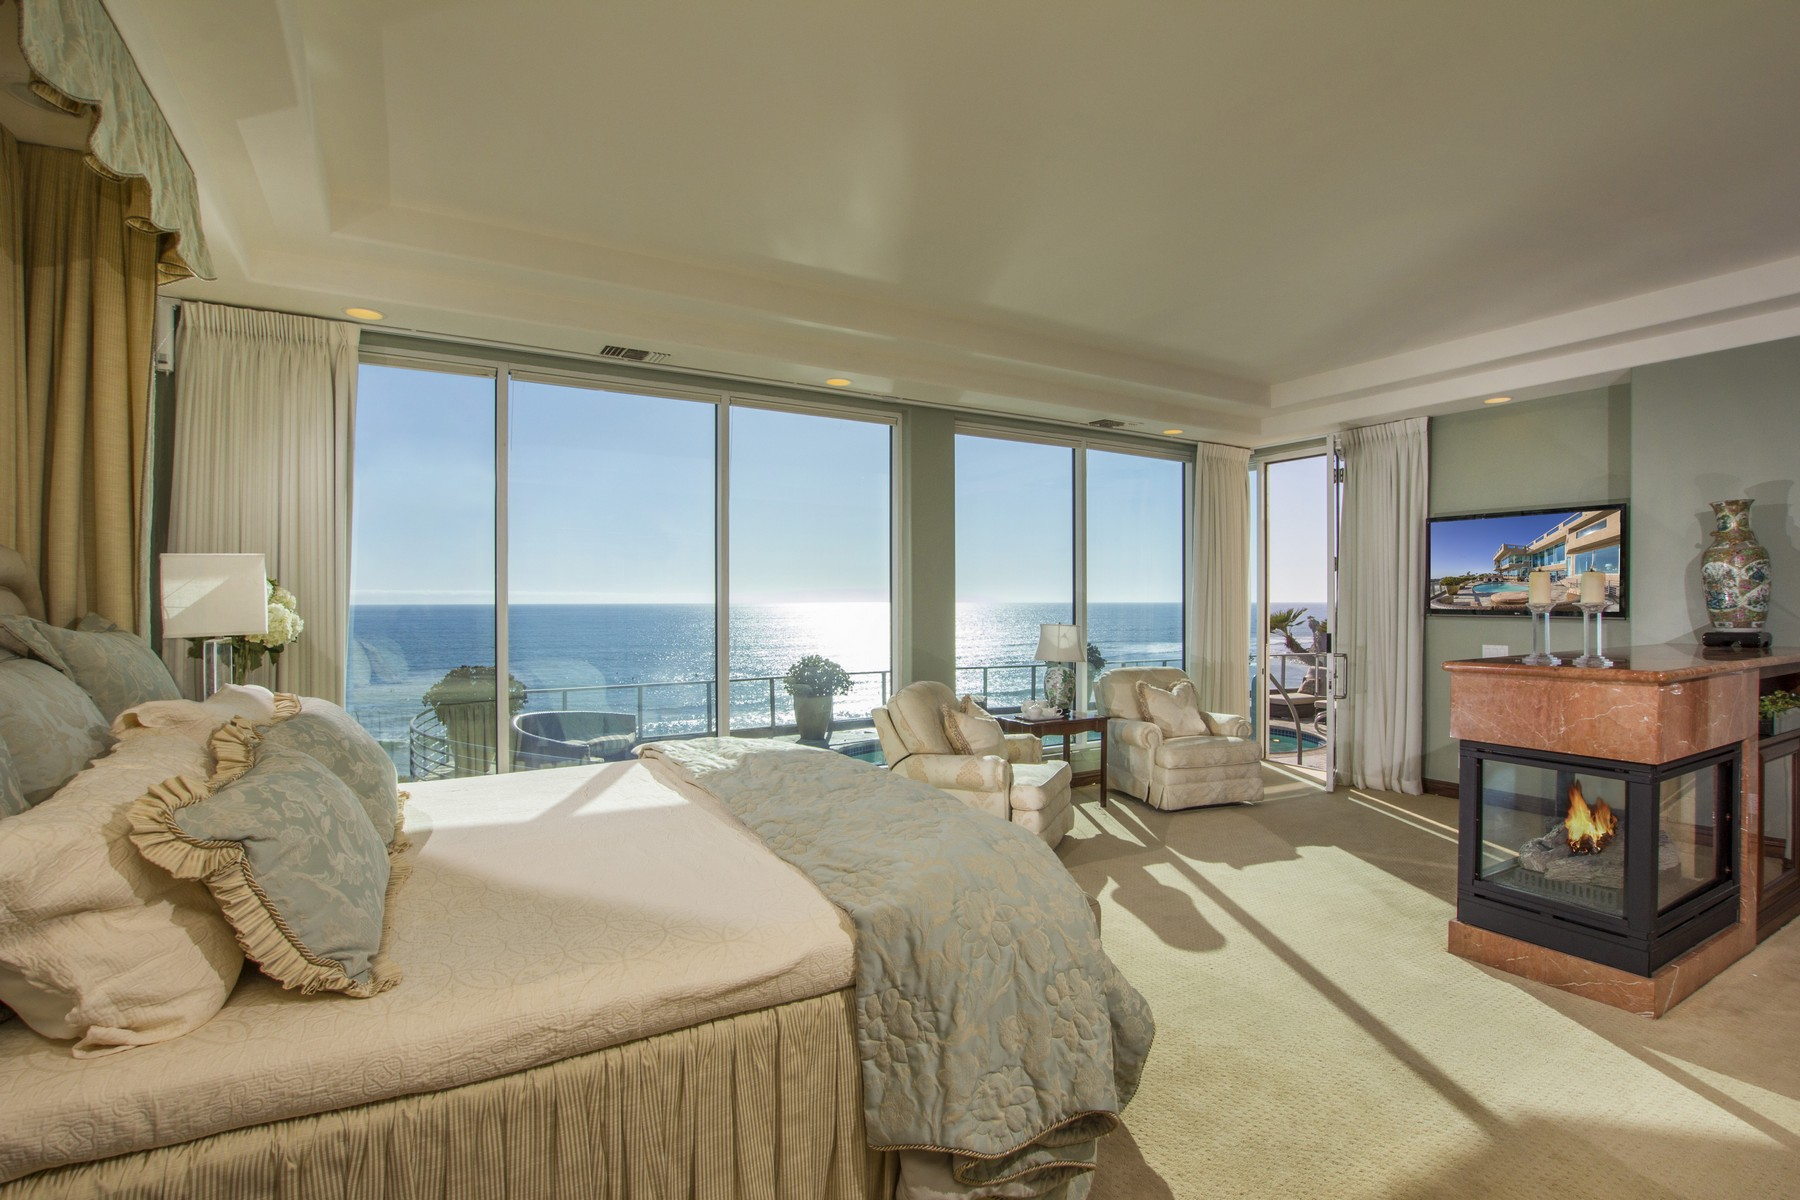 Additional photo for property listing at 5212 Chelsea Street  La Jolla, California 92037 United States